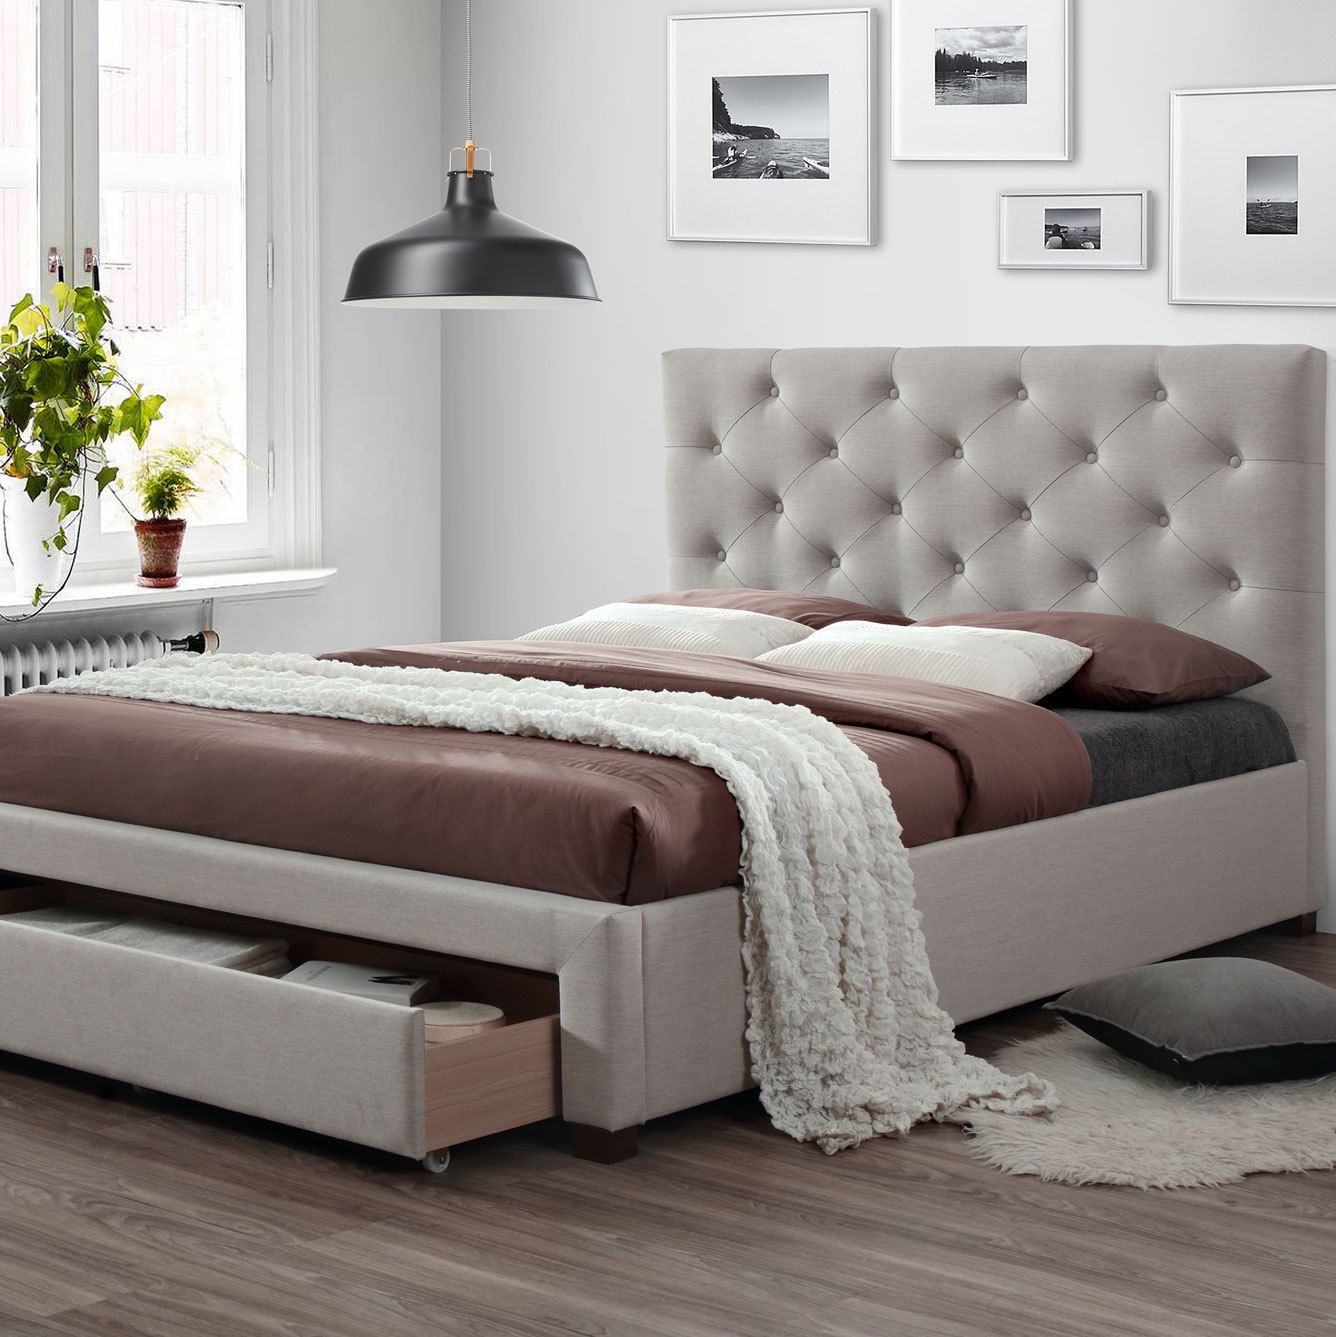 Kingston Queen Bed with Storage Temple & Webster Queen